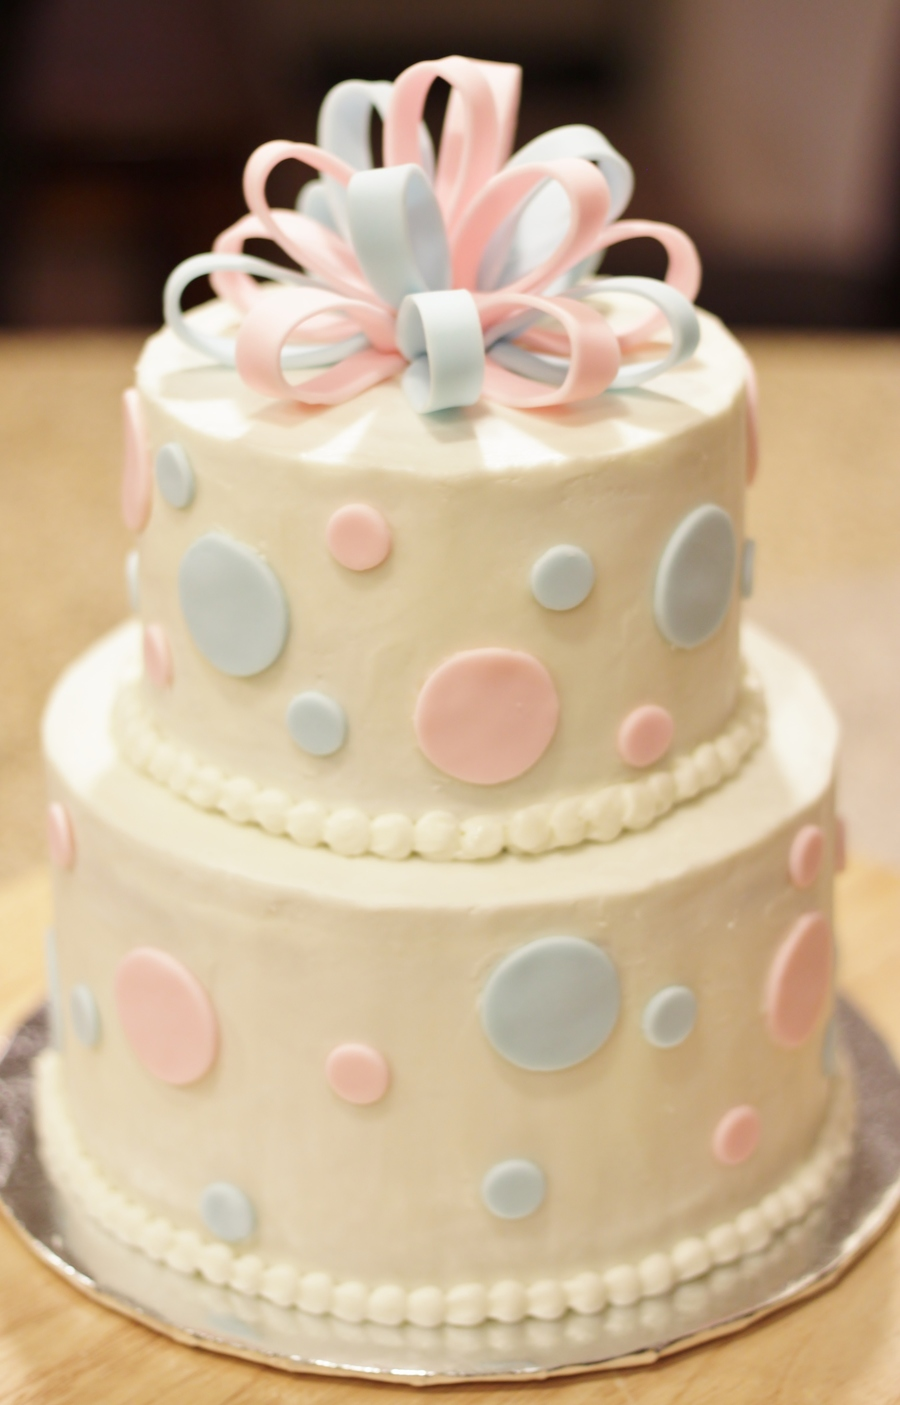 Fondant Decor On Buttercream Cake : Buttercream 6 And 8 Inch Cakes With Fondant Decorations ...